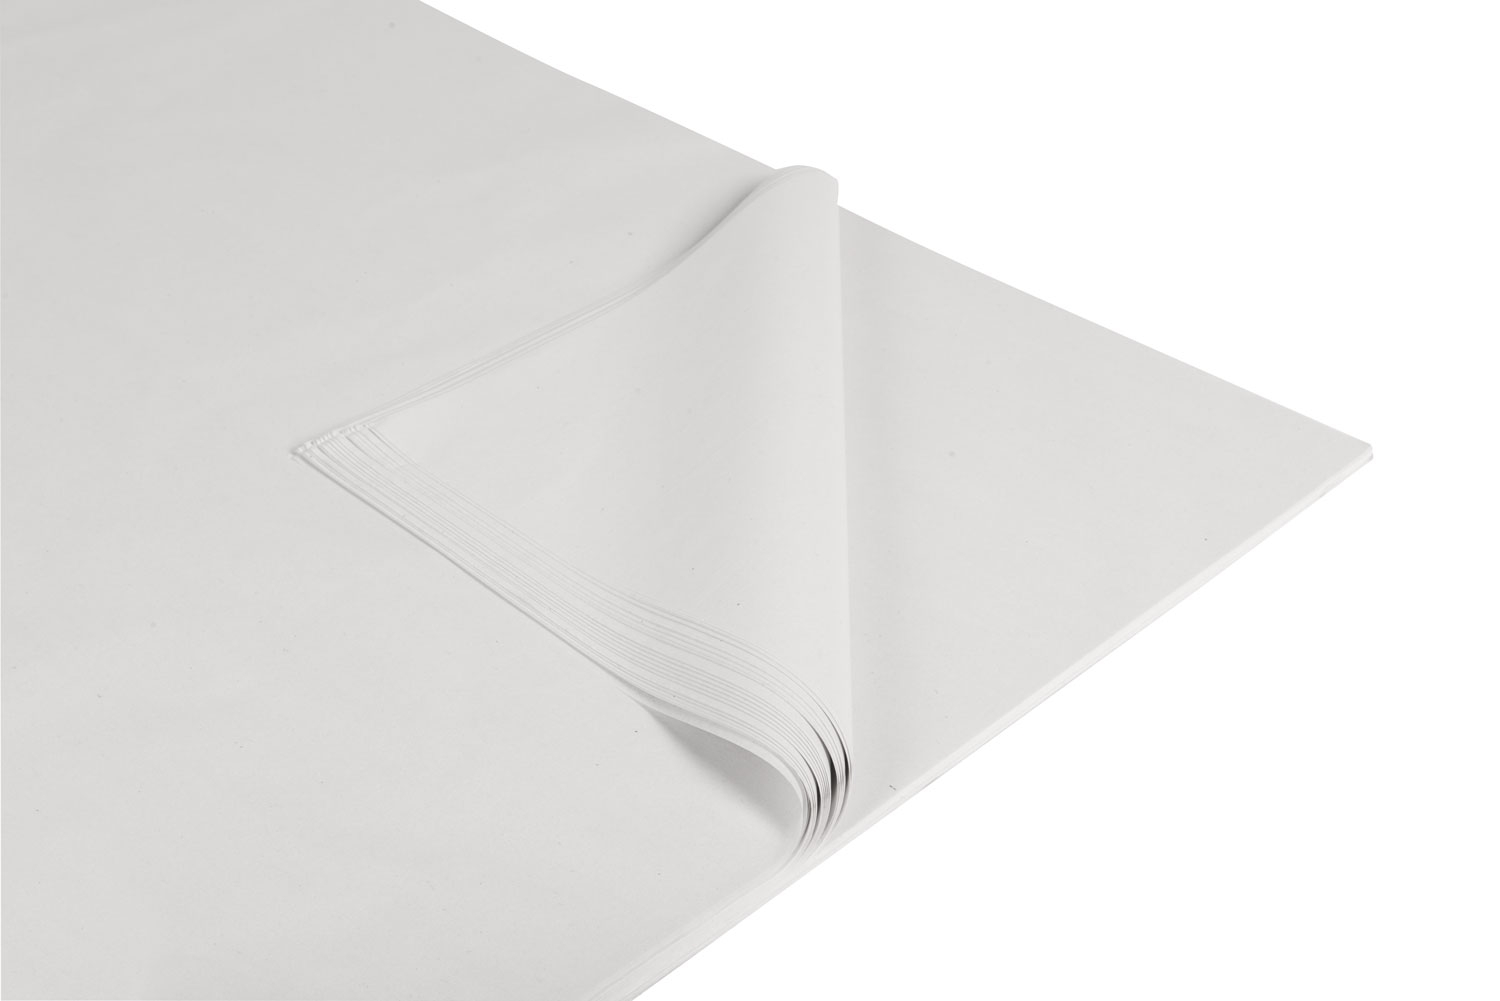 20inch X 30inch White New Offcuts - 10kg packs